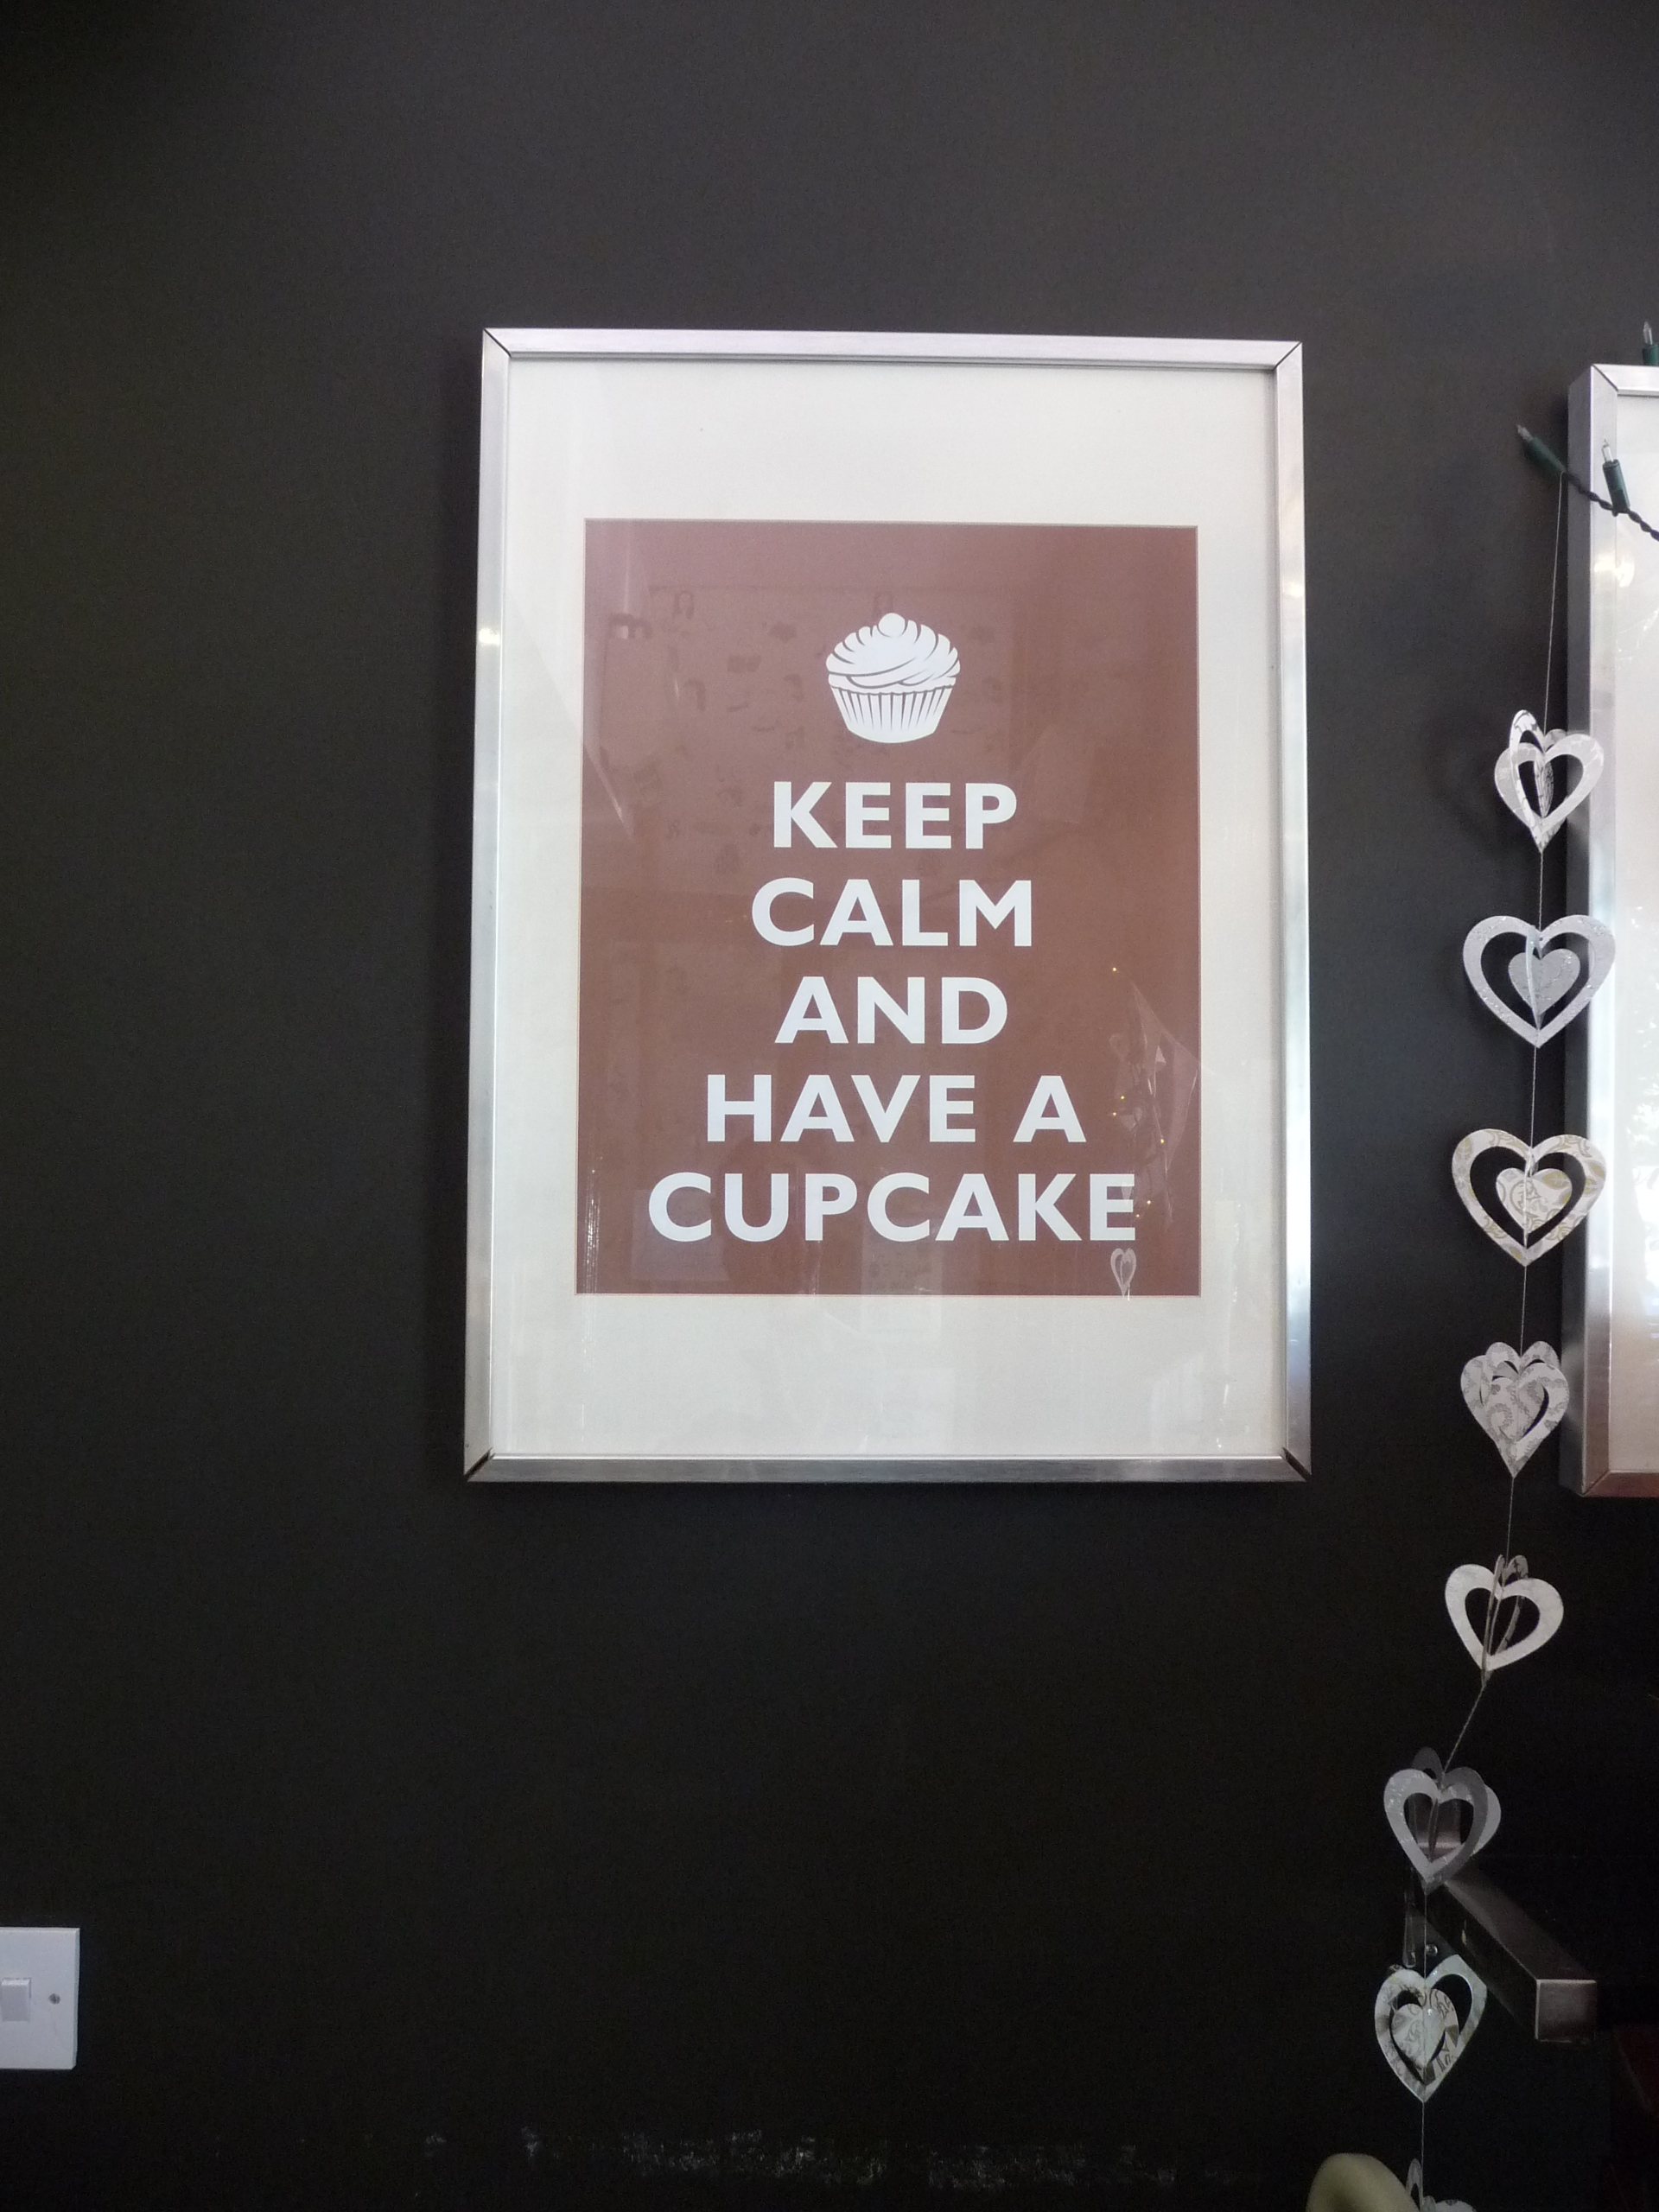 Keep Calm and Have a Cupcake!!